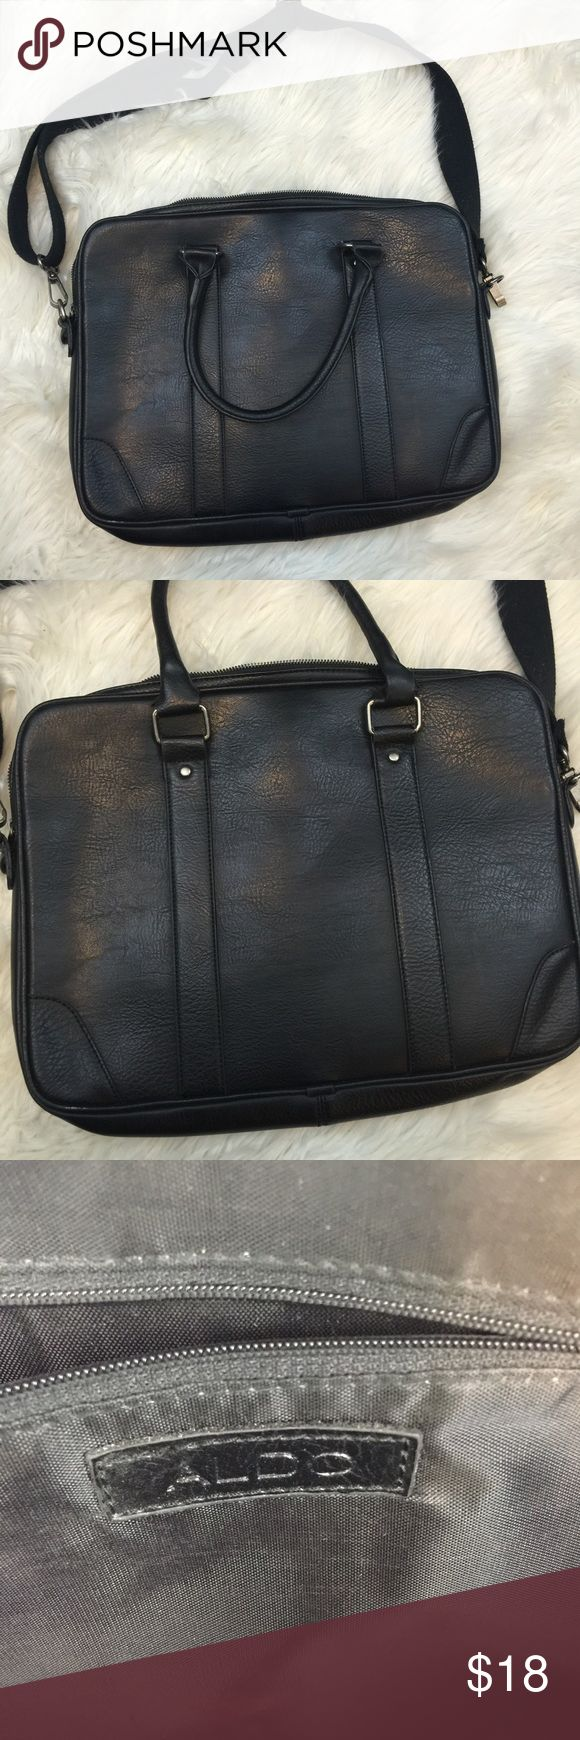 Aldo Black Leather Messenger Bag Beautiful bag, gently used with no flaws Aldo Bags Laptop Bags